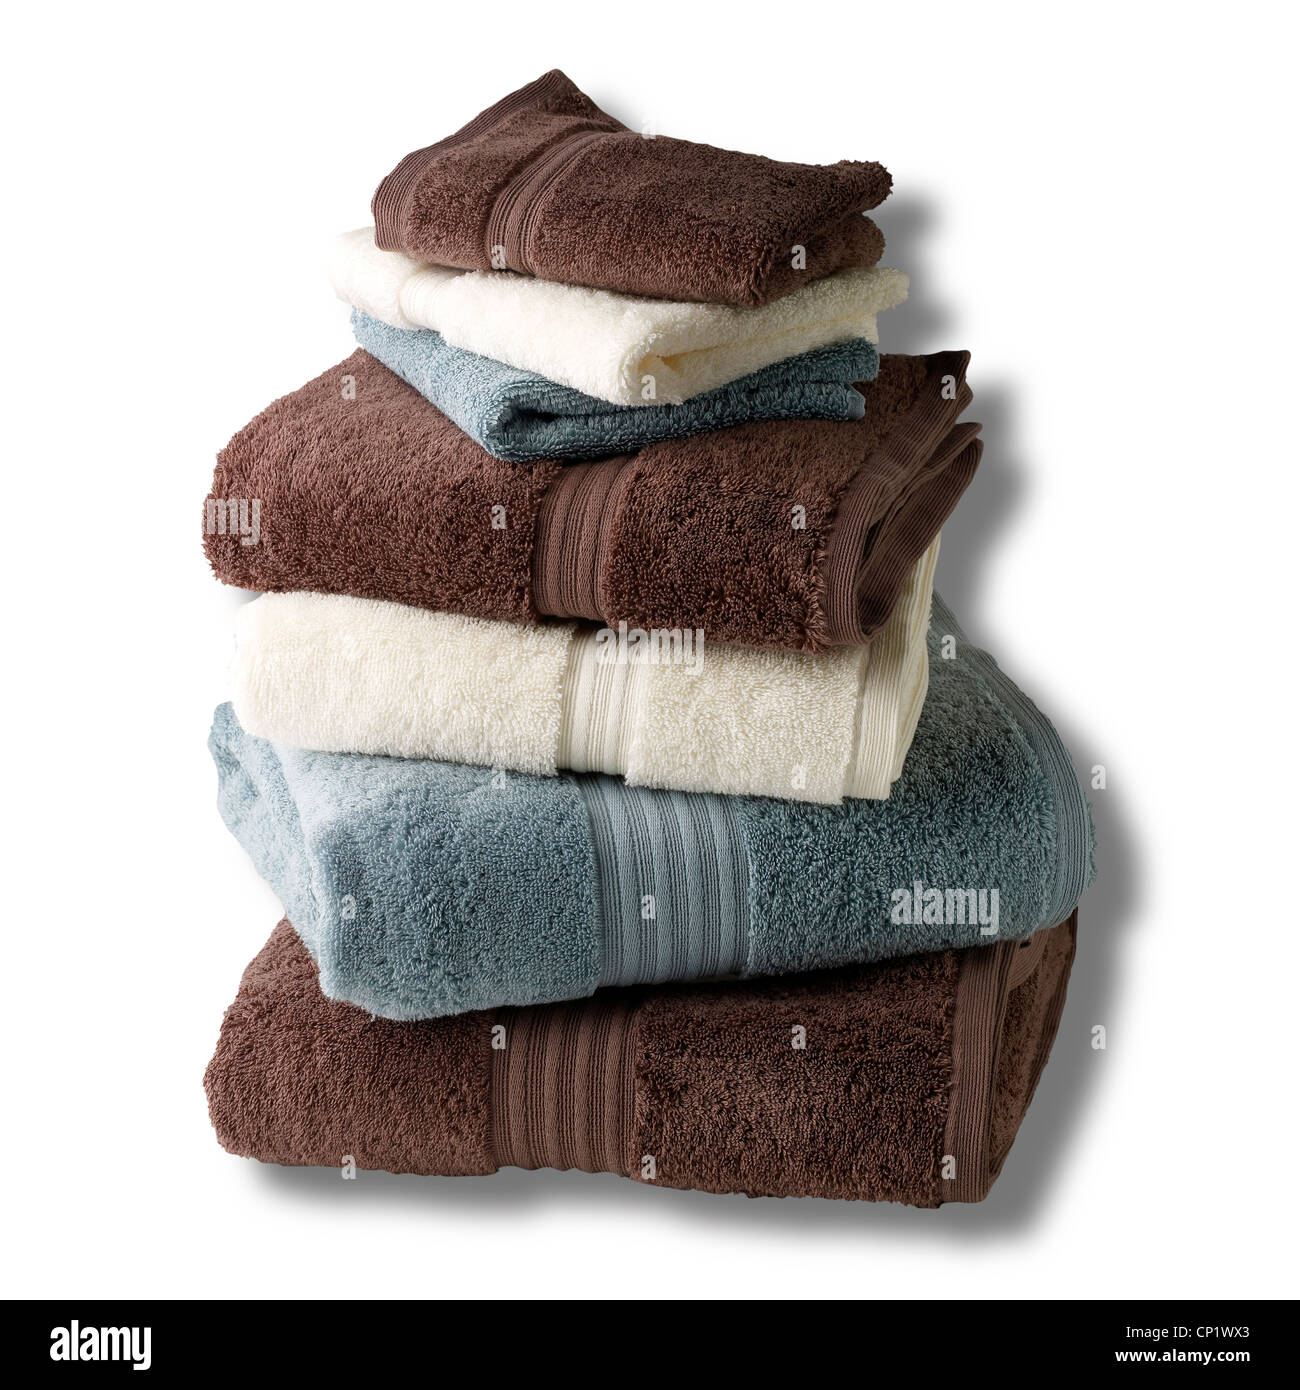 A still life shot of a stack of bath towels Stock Photo